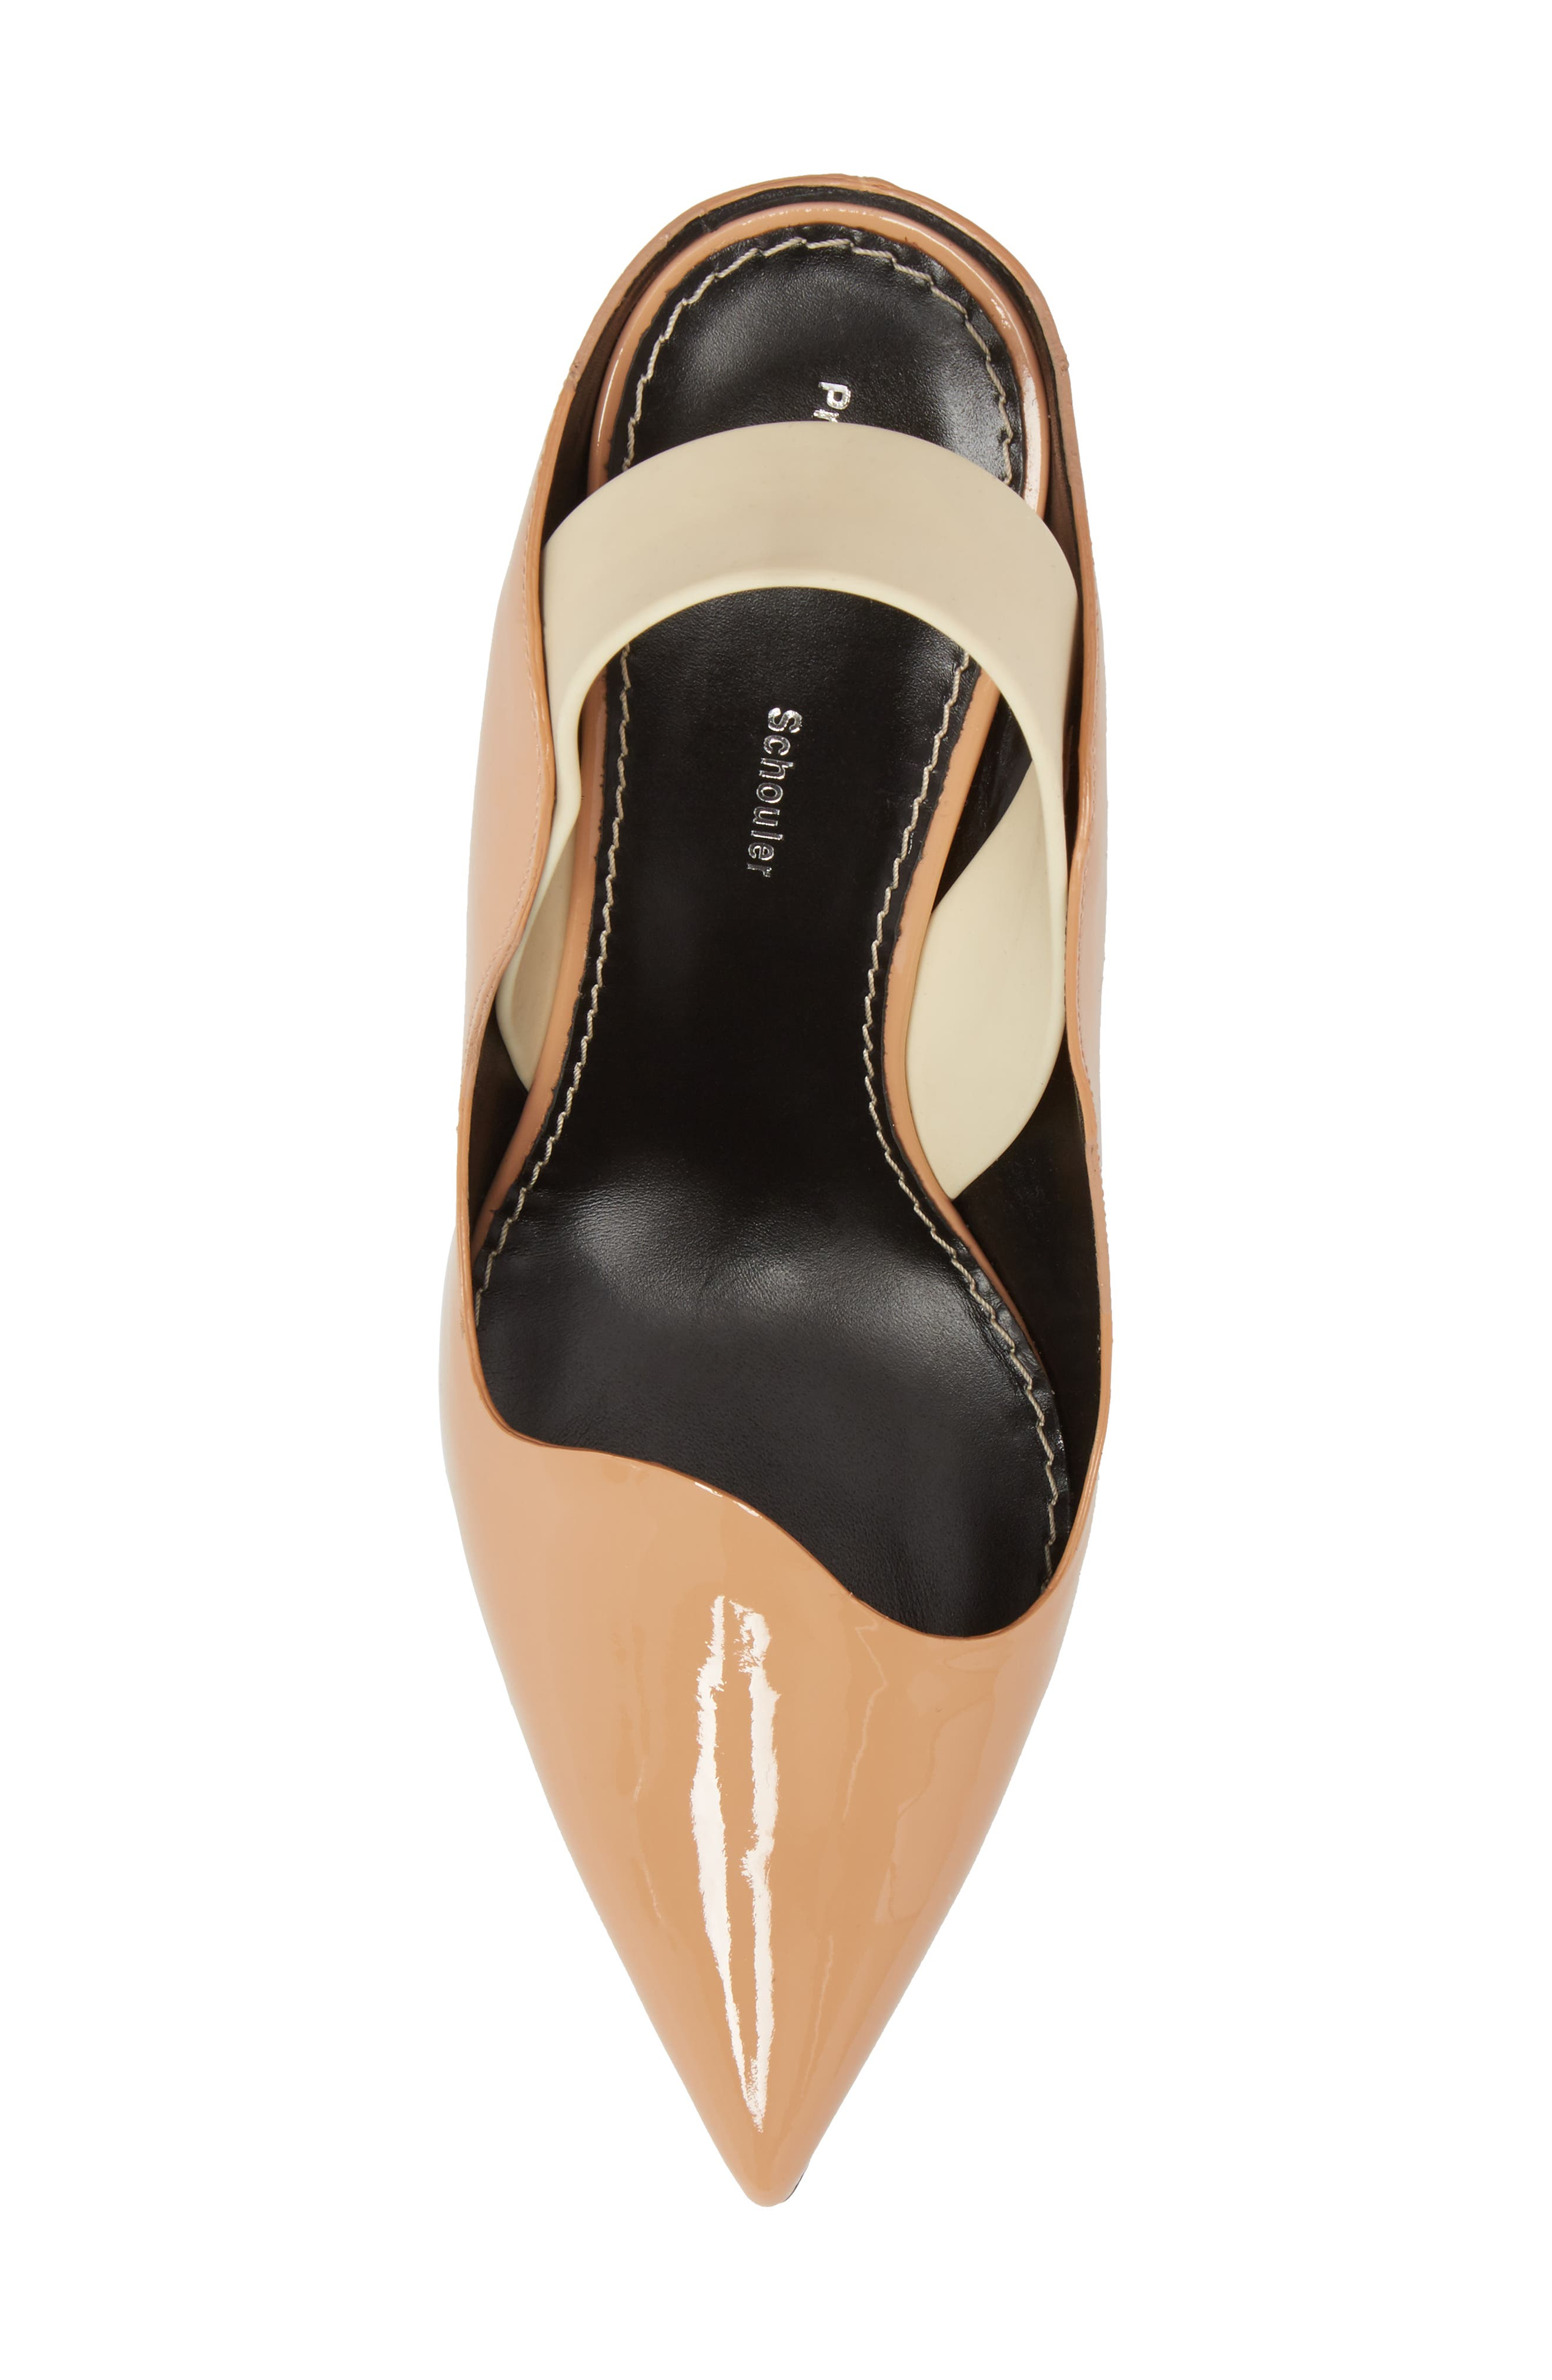 Wave Slingback Pump,                             Alternate thumbnail 5, color,                             Nude